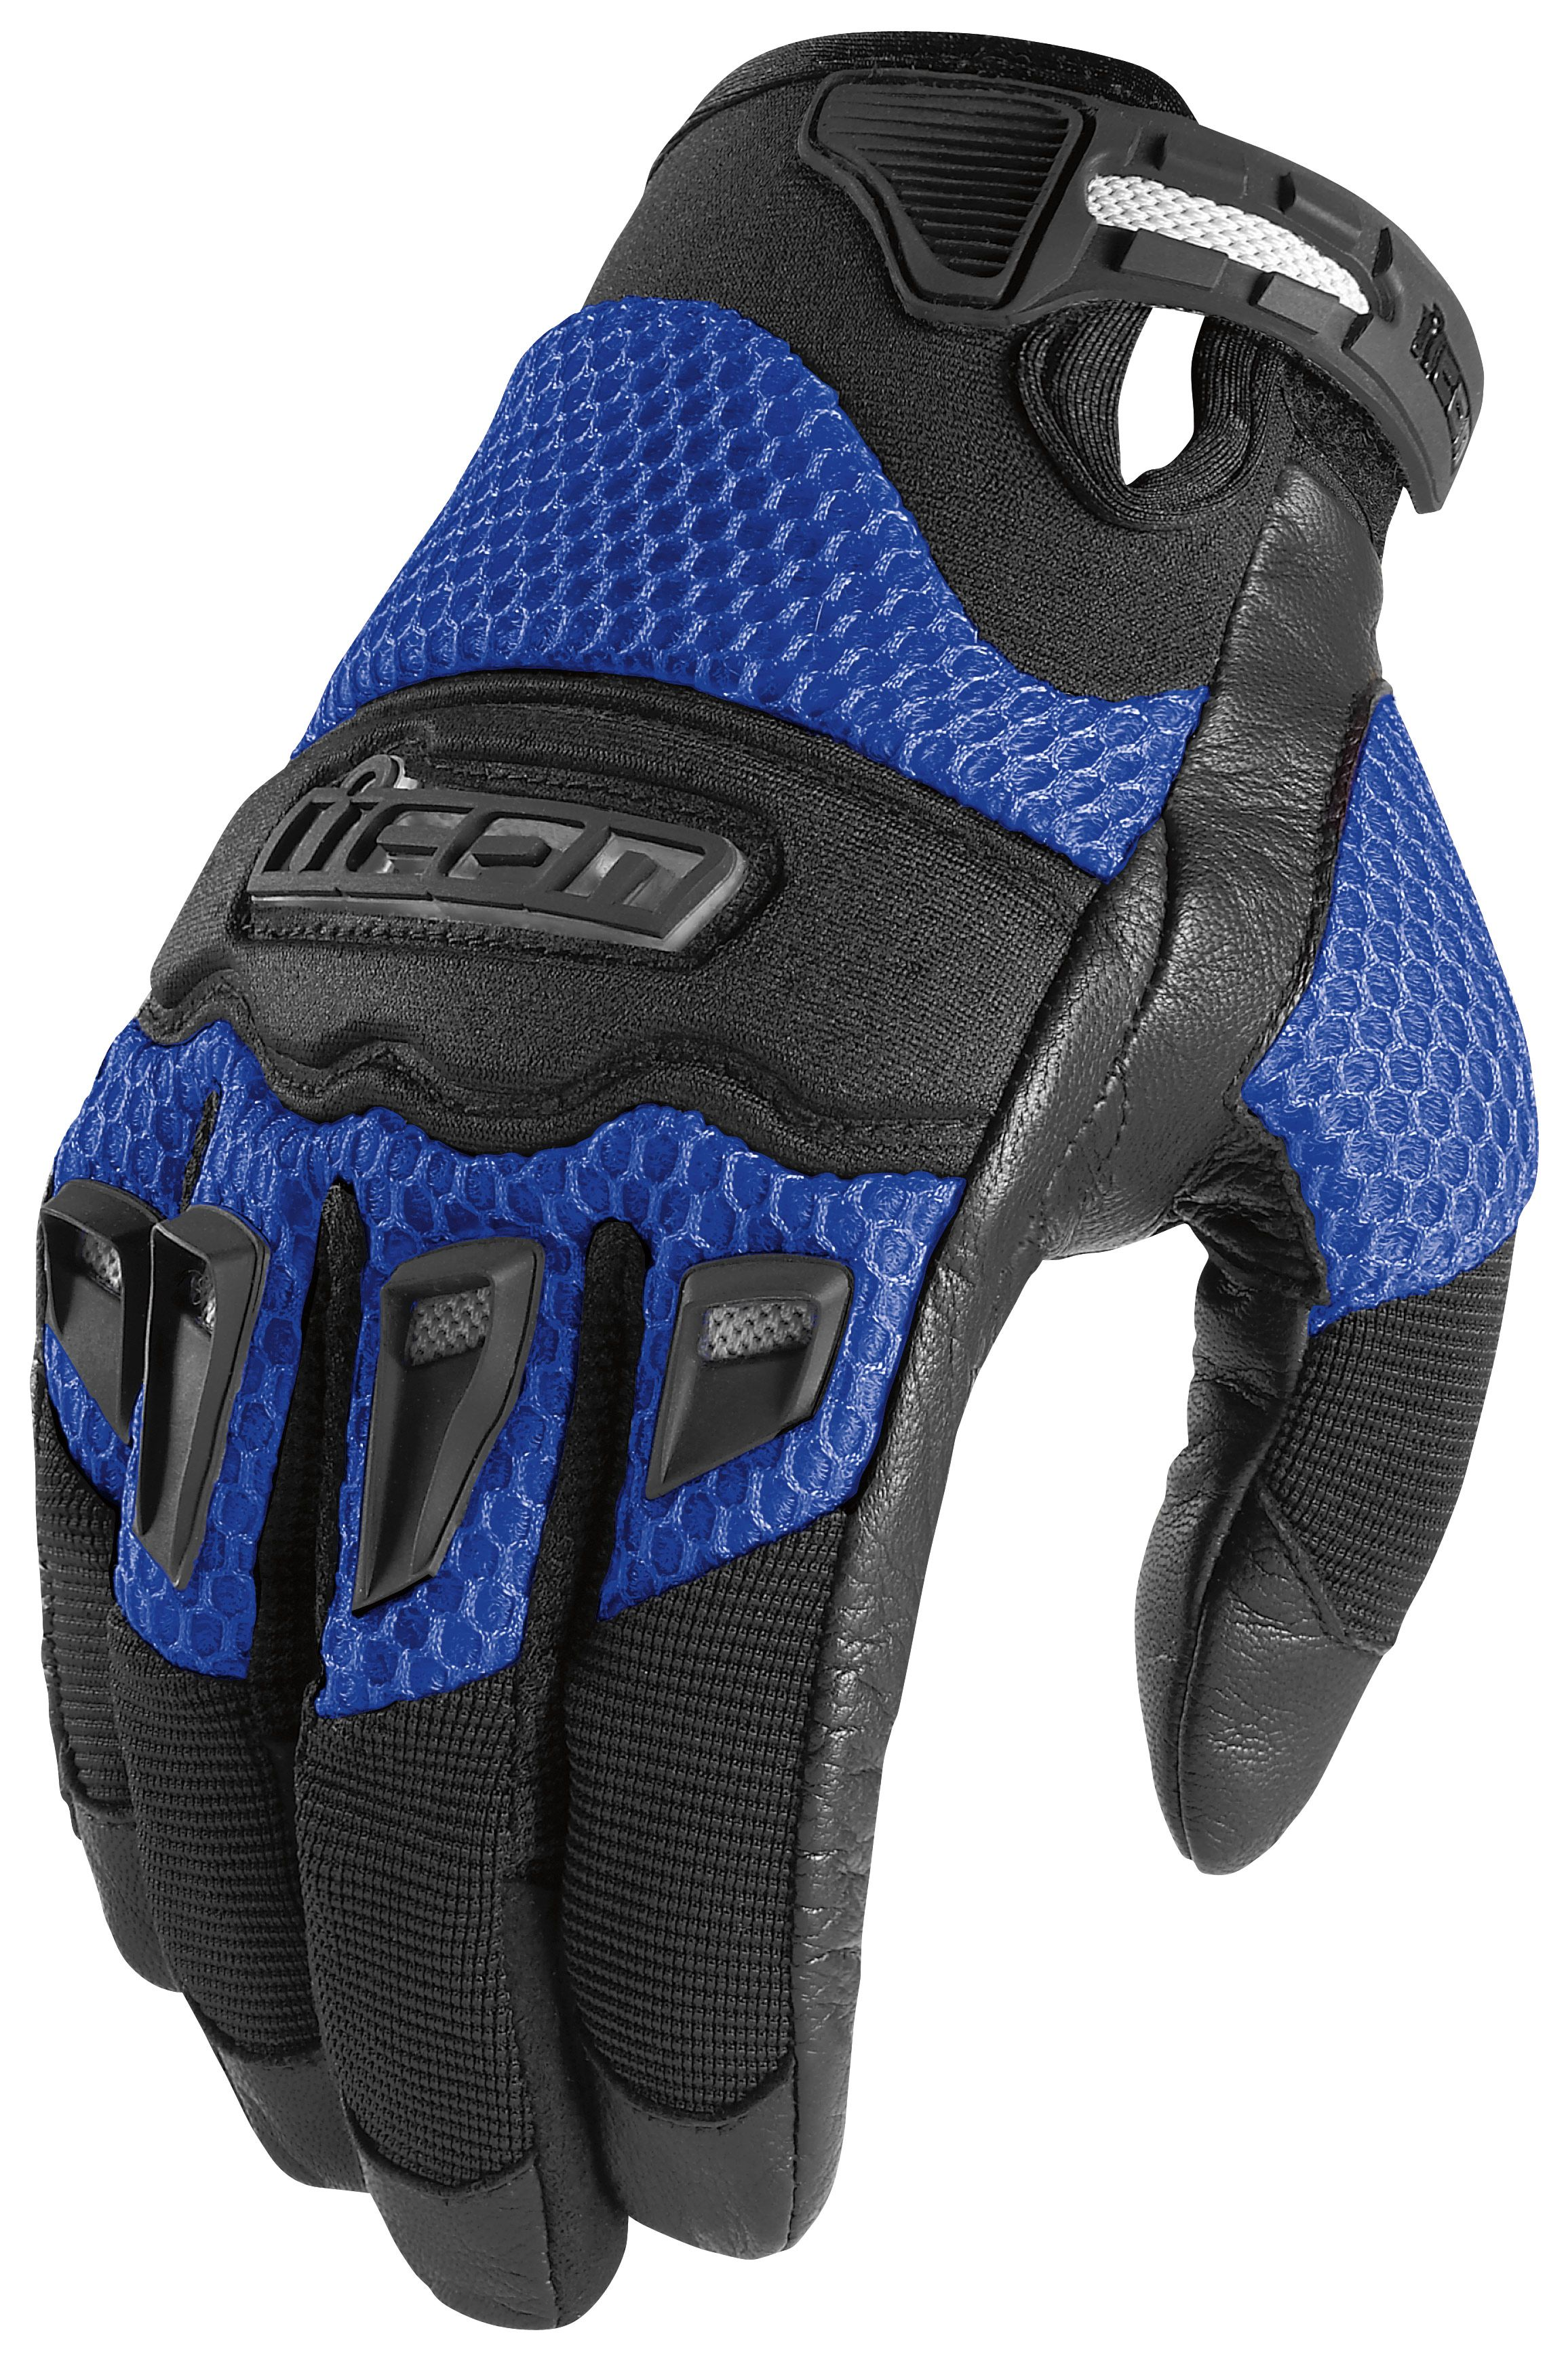 Motorcycle gloves tight or loose - Motorcycle Gloves Tight Or Loose 23